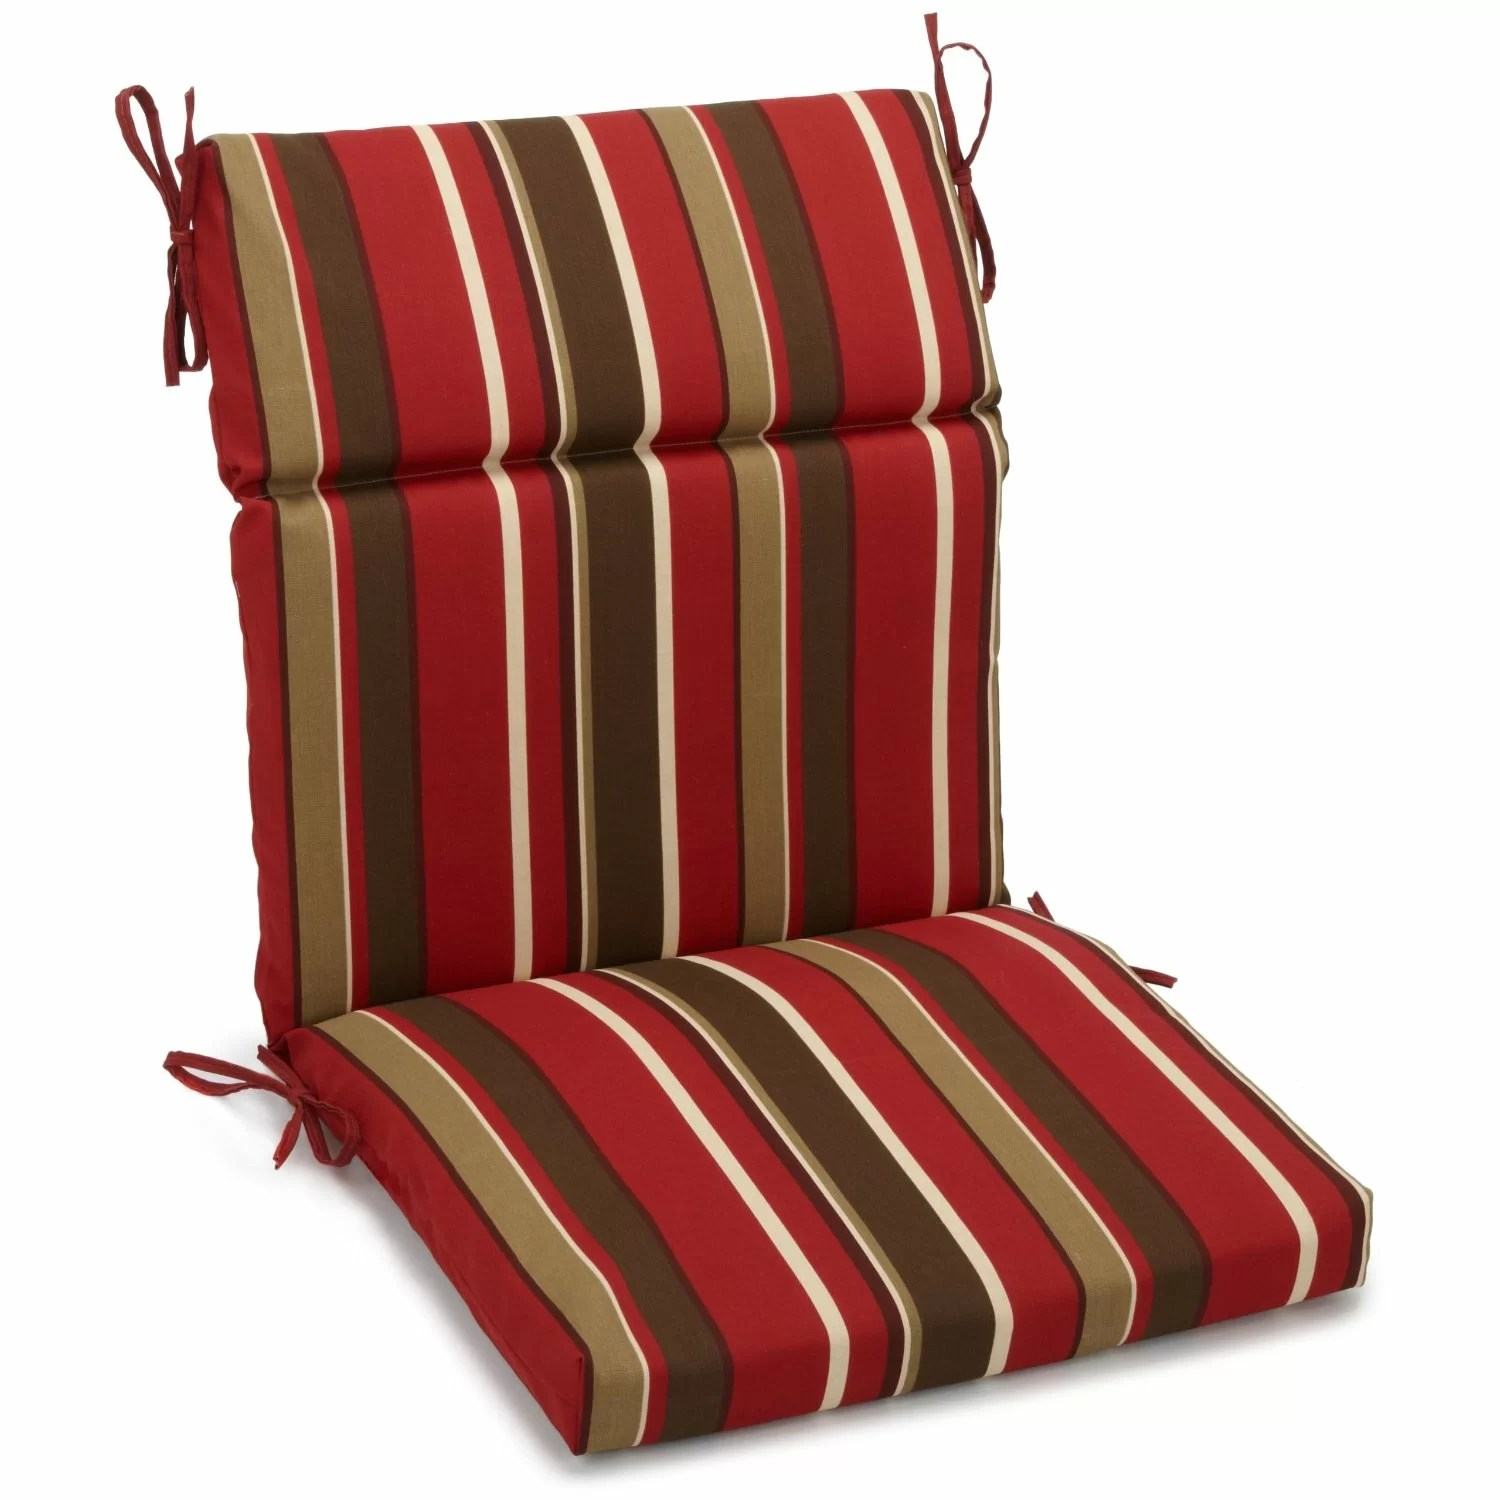 Outdoor Lounge Chair Cushions Blazing Needles Monserrat Outdoor Lounge Chair Cushion